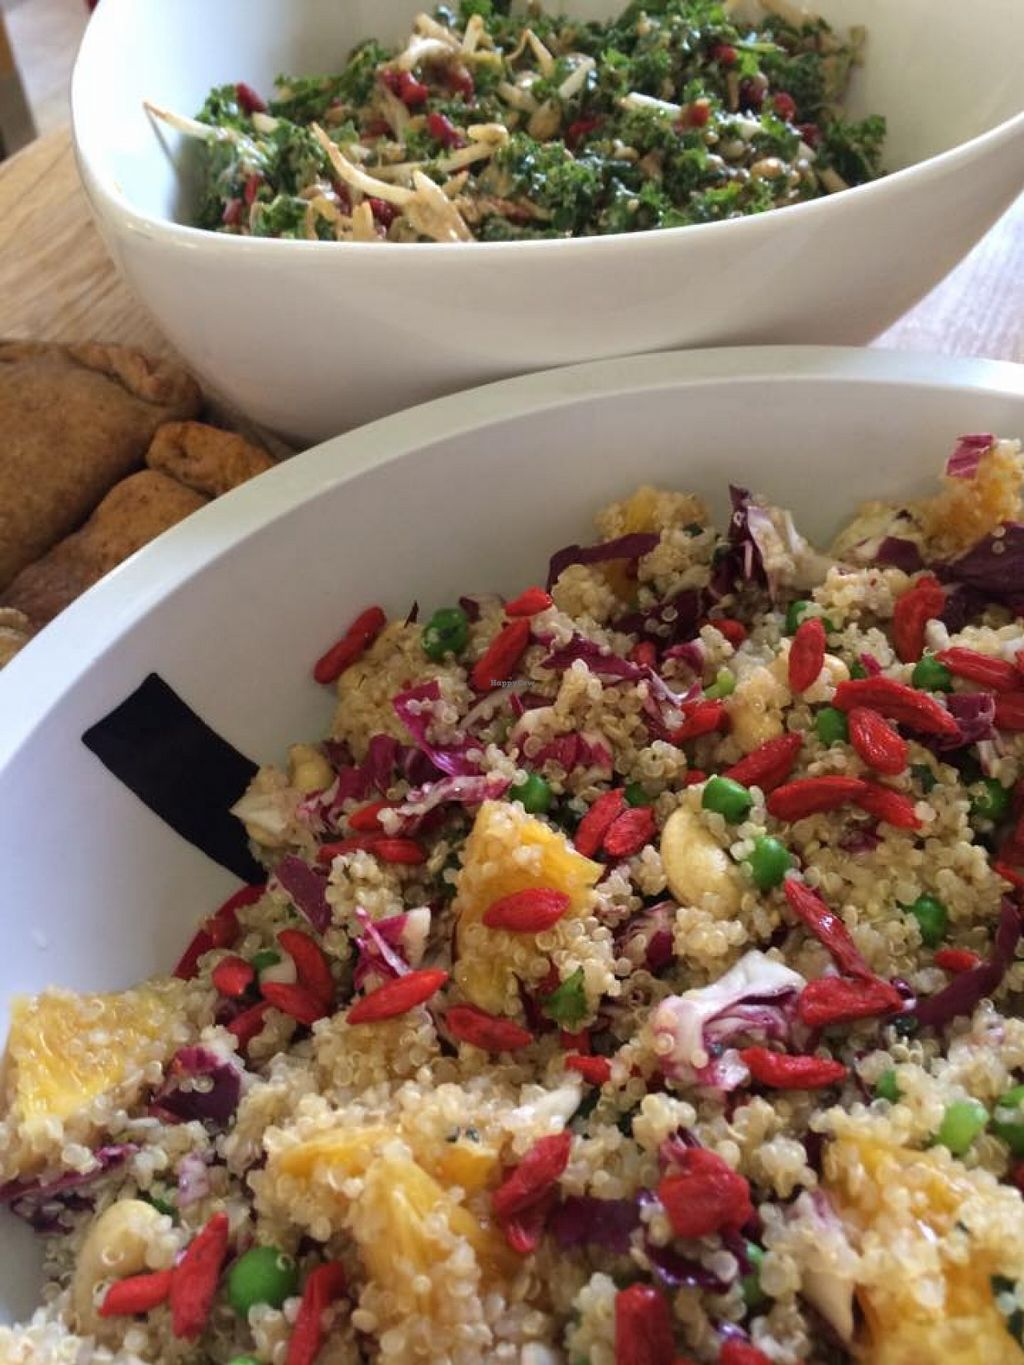 """Photo of Vegan Chef James De Burca  by <a href=""""/members/profile/community"""">community</a> <br/>quinoa salad <br/> May 19, 2016  - <a href='/contact/abuse/image/69128/149868'>Report</a>"""